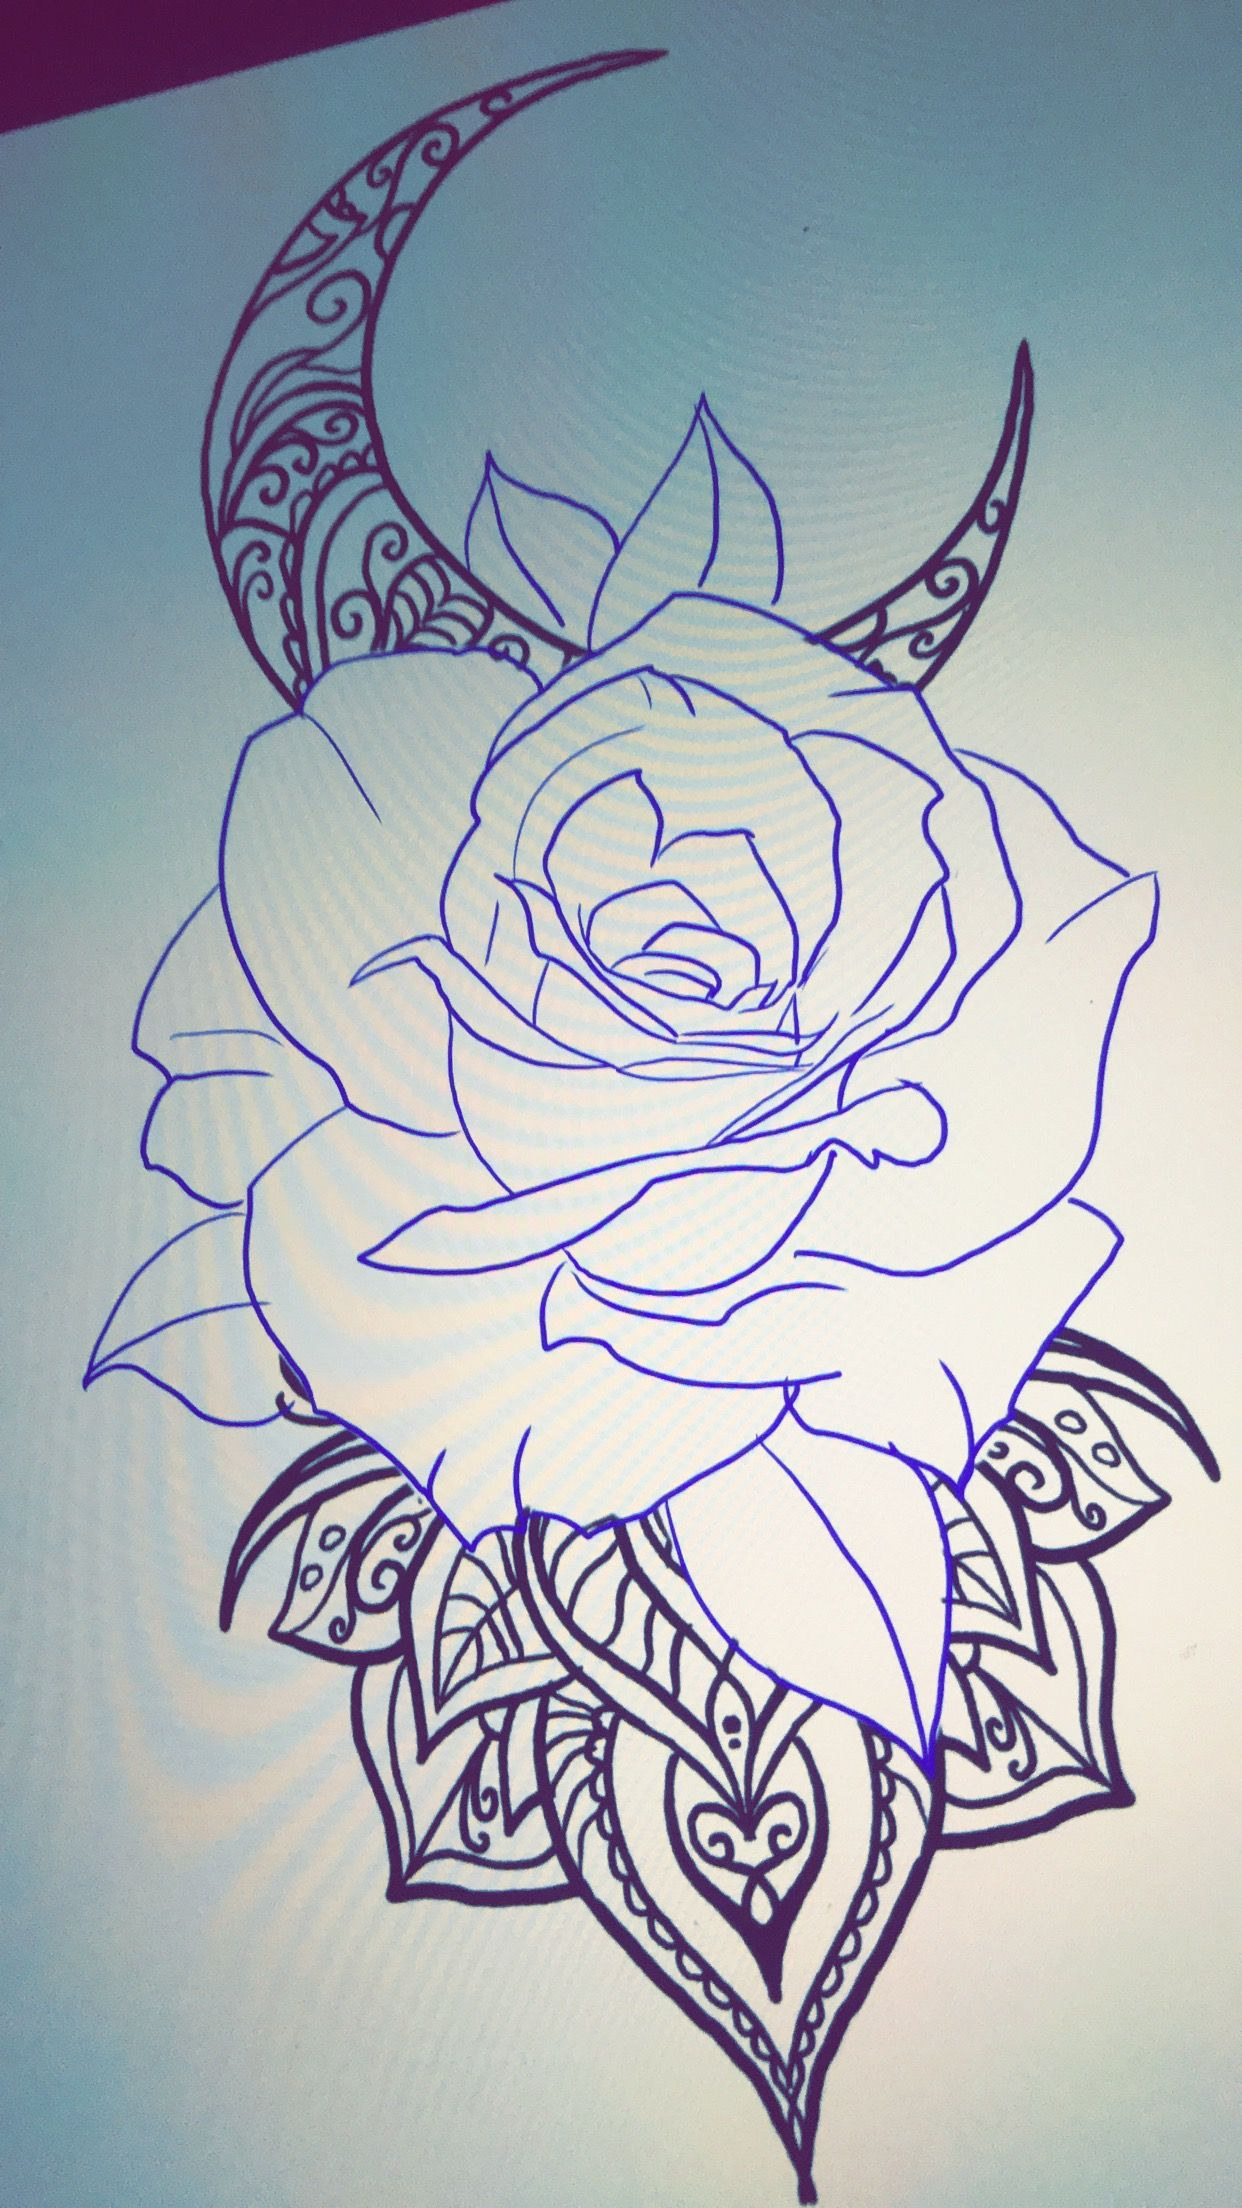 Pin By Tattoo Sal On Art Rose Drawing Tattoo Abstract Tattoo Designs Clock And Rose Tattoo